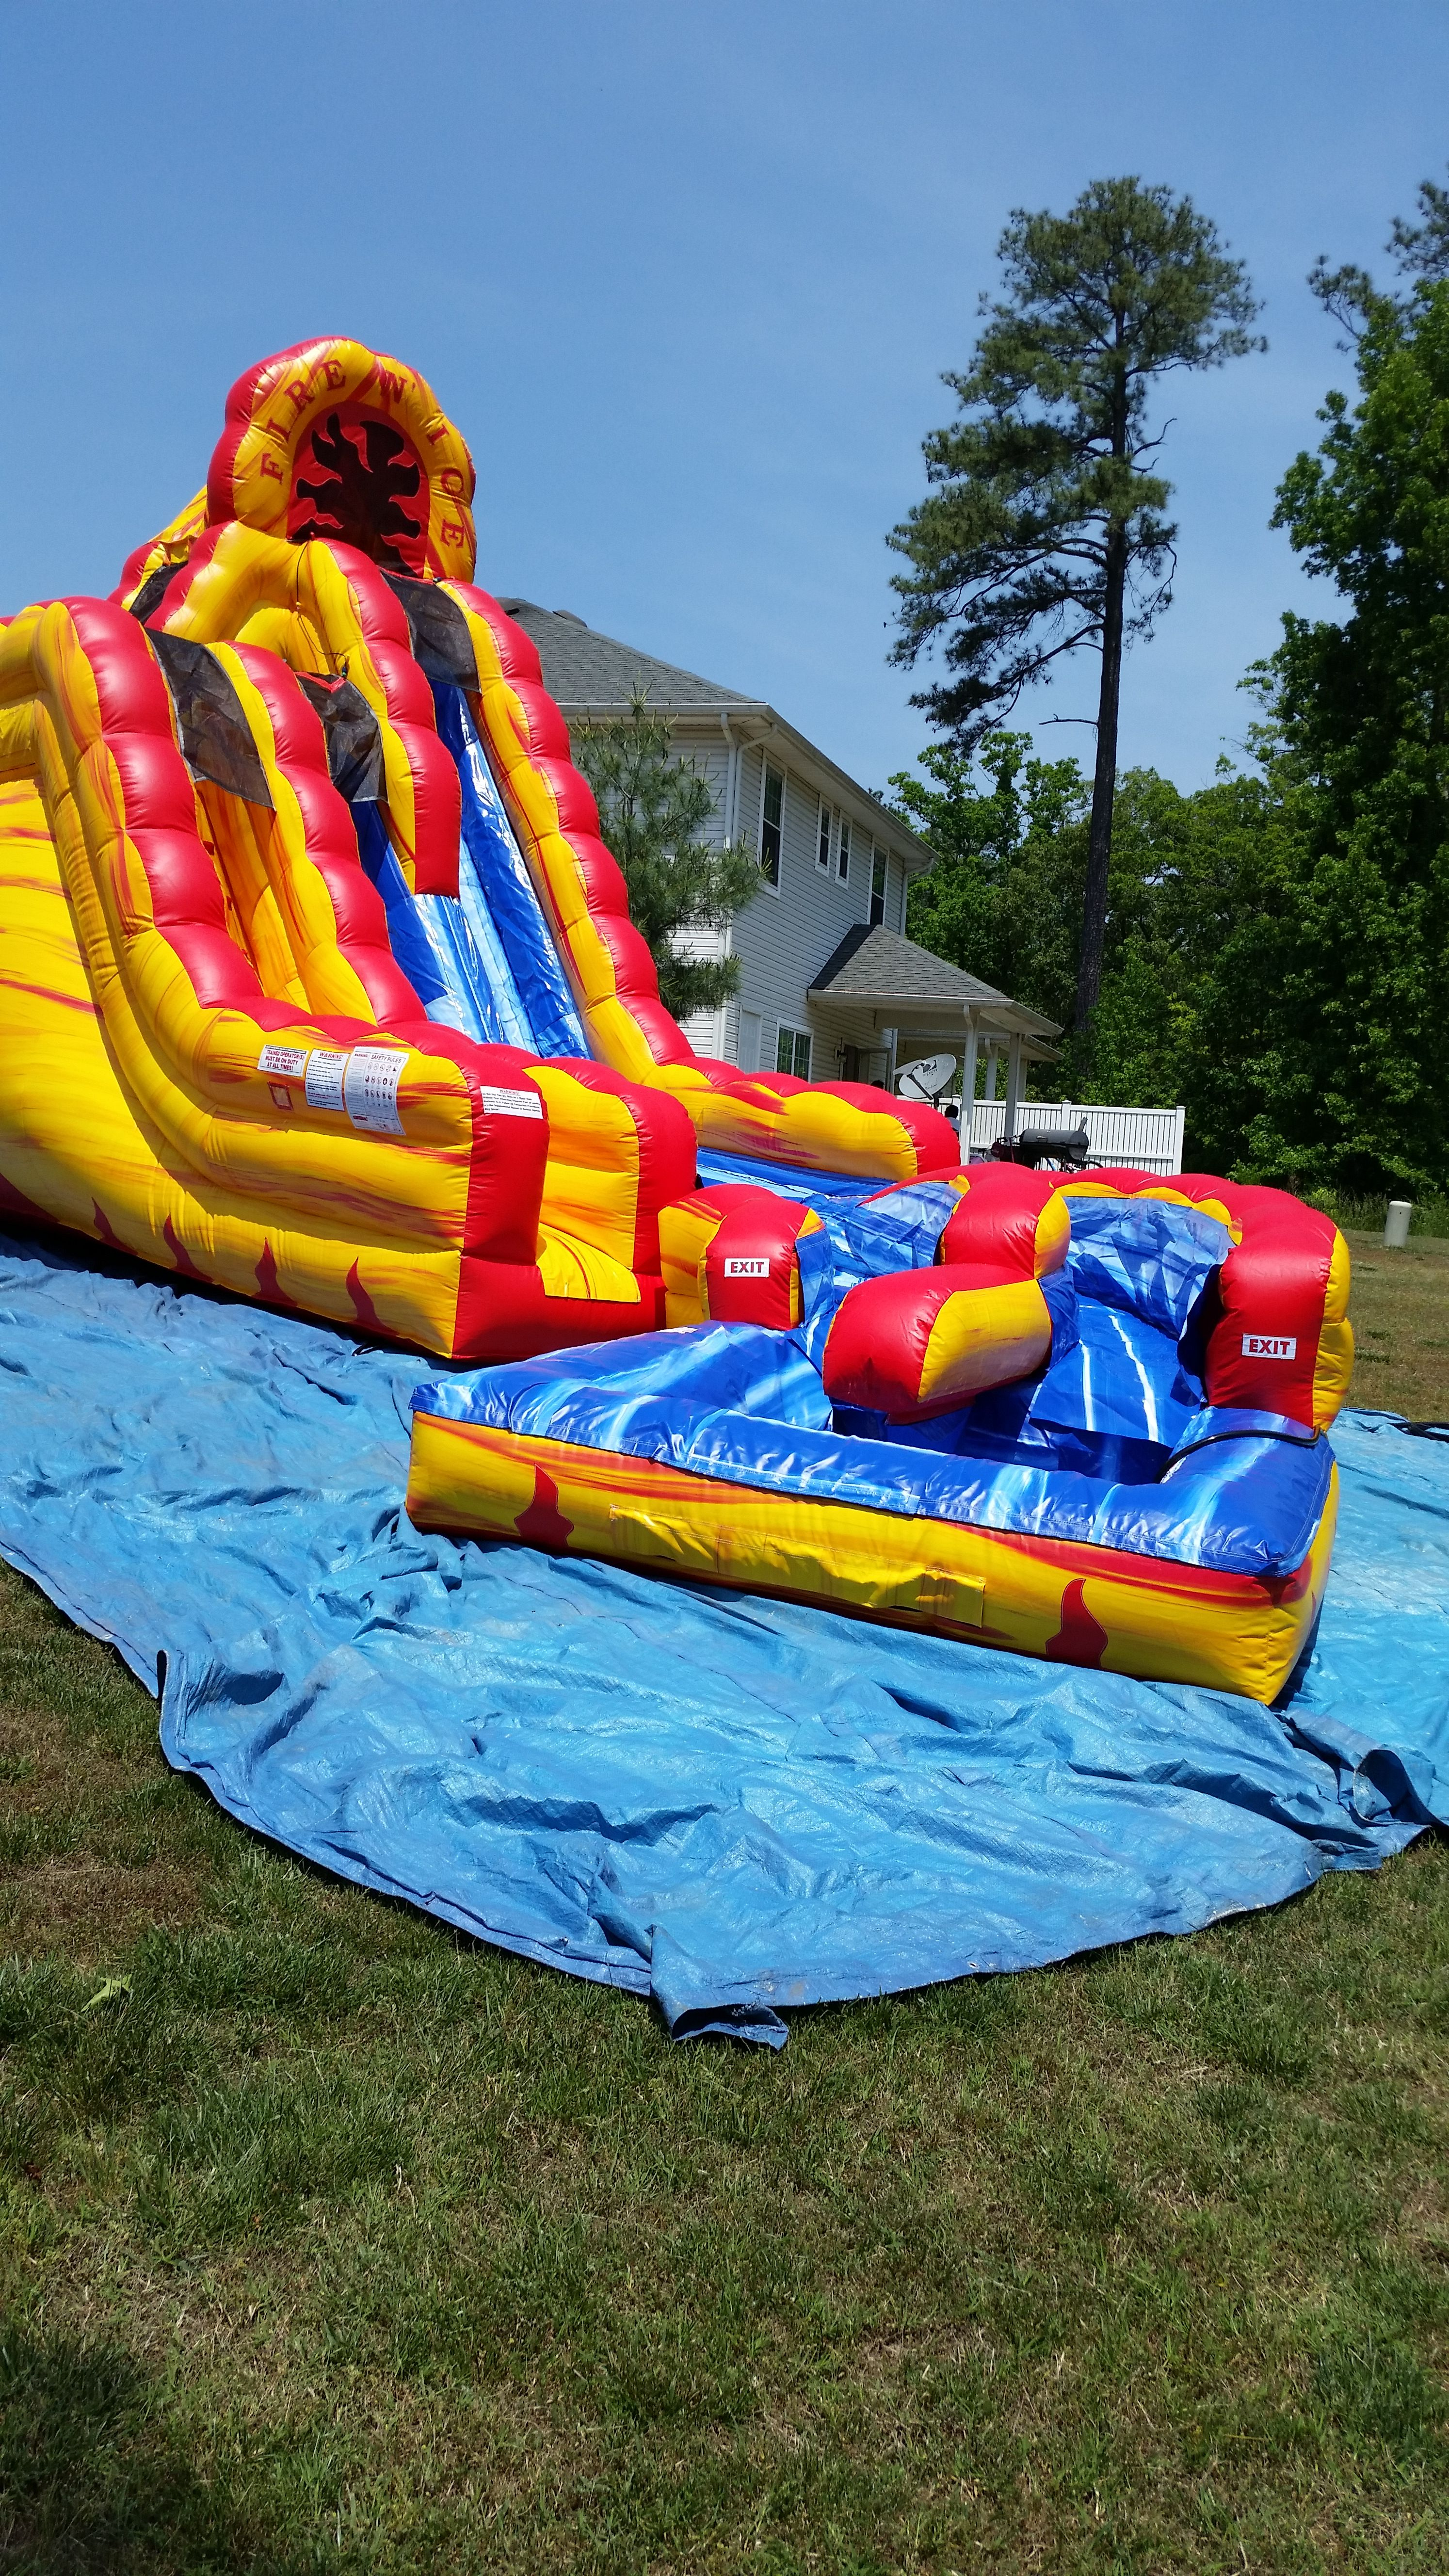 Rent E Quip S Fire And Ice Moonwalk With Pool Petersburg Virginia Colonial Heights Pool